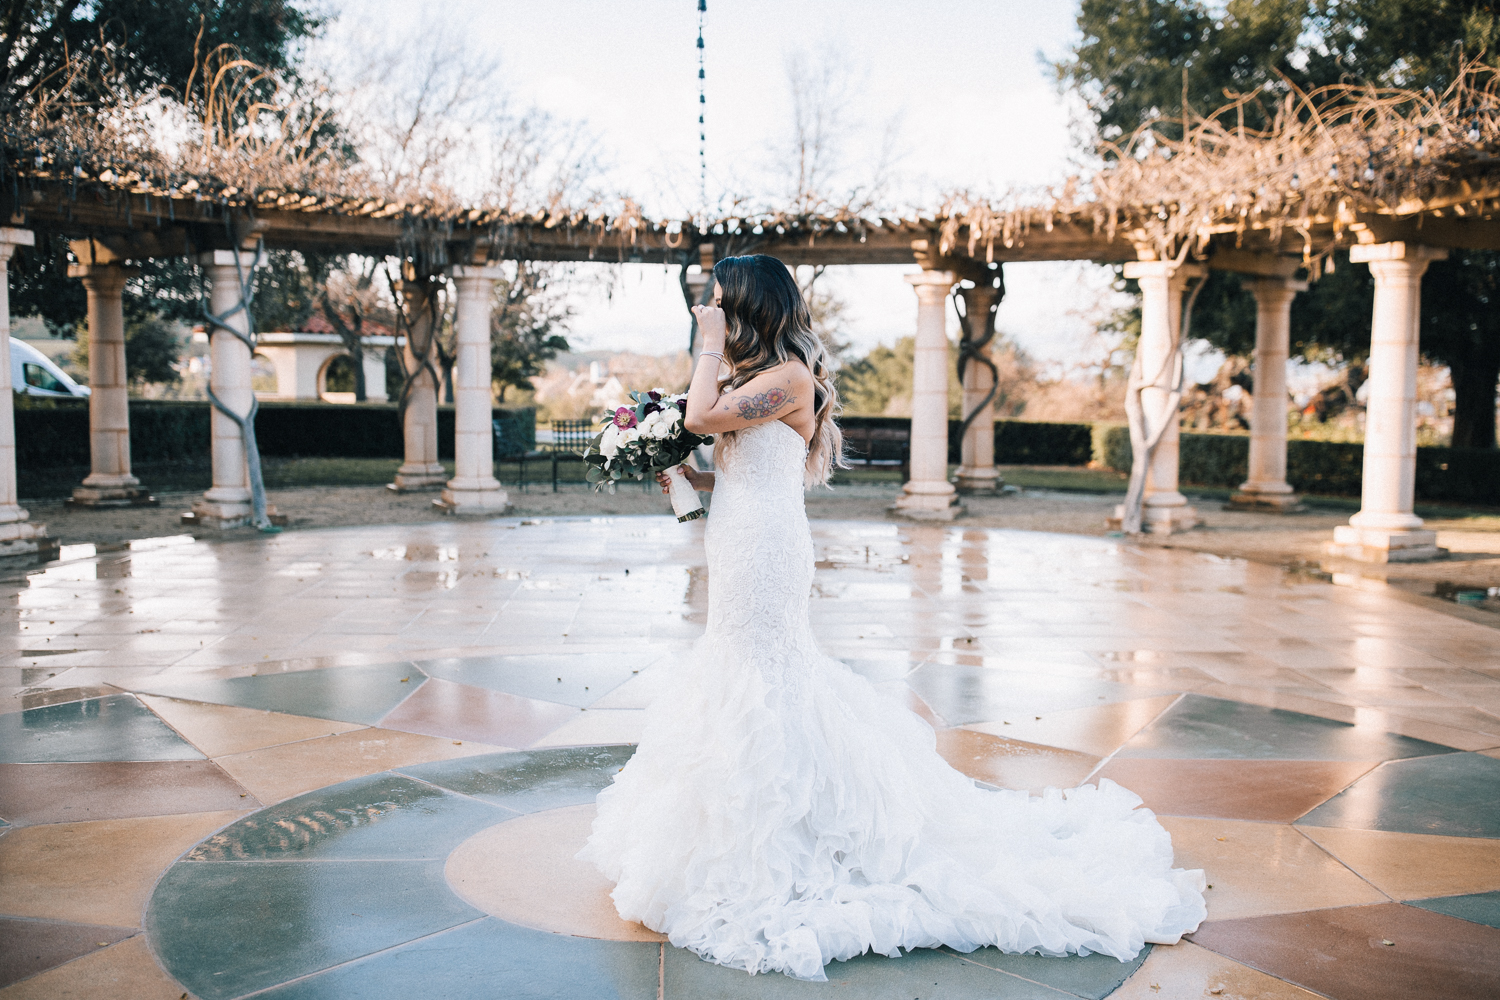 2019_01_ 202019.01.20 Santiago Wedding Blog Photos Edited For Web 0033.jpg